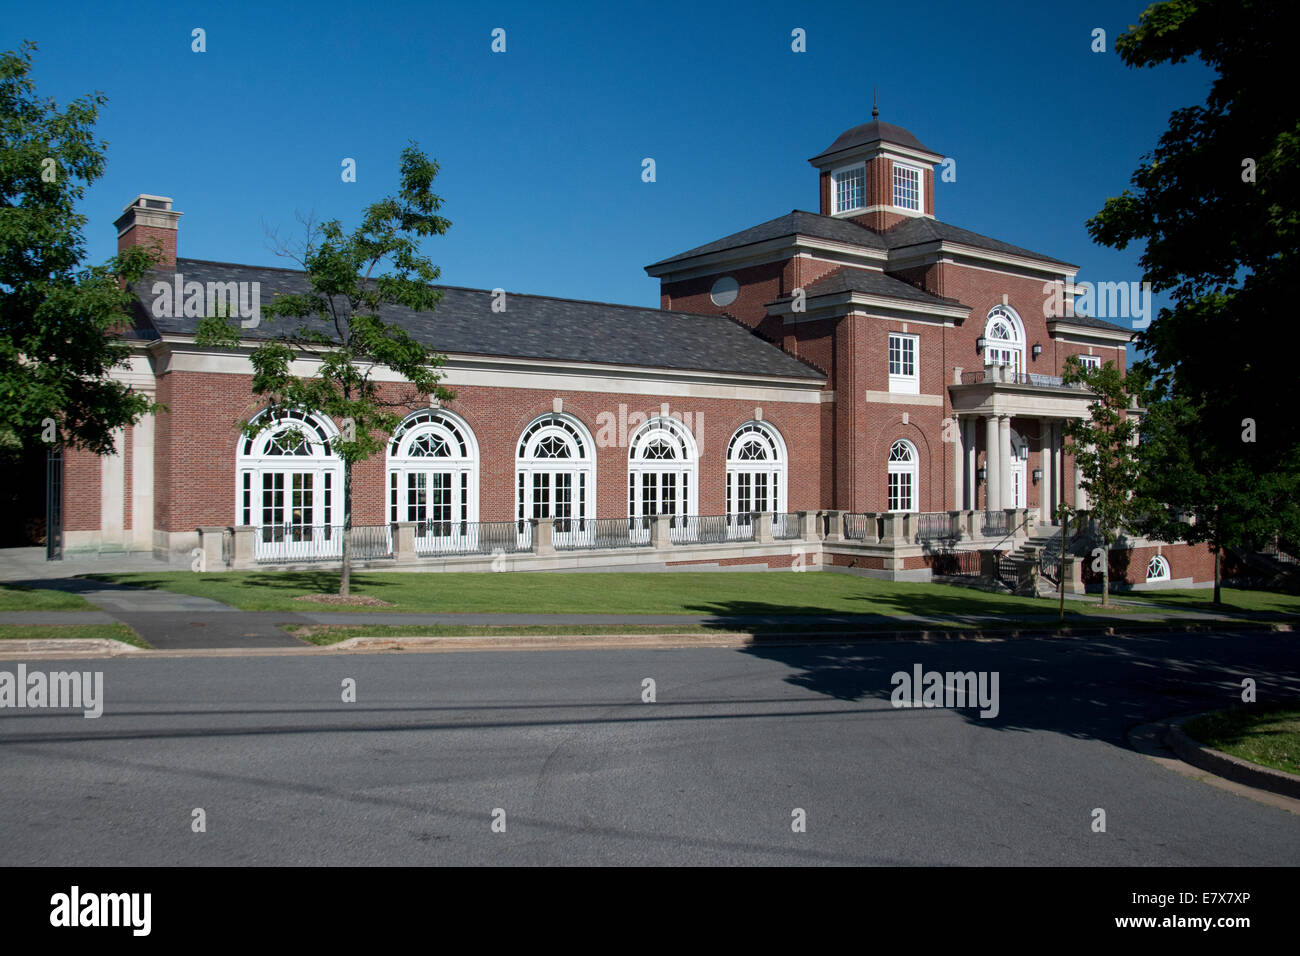 A viw of the K.C. Irving Centre at Acadia University. - Stock Image